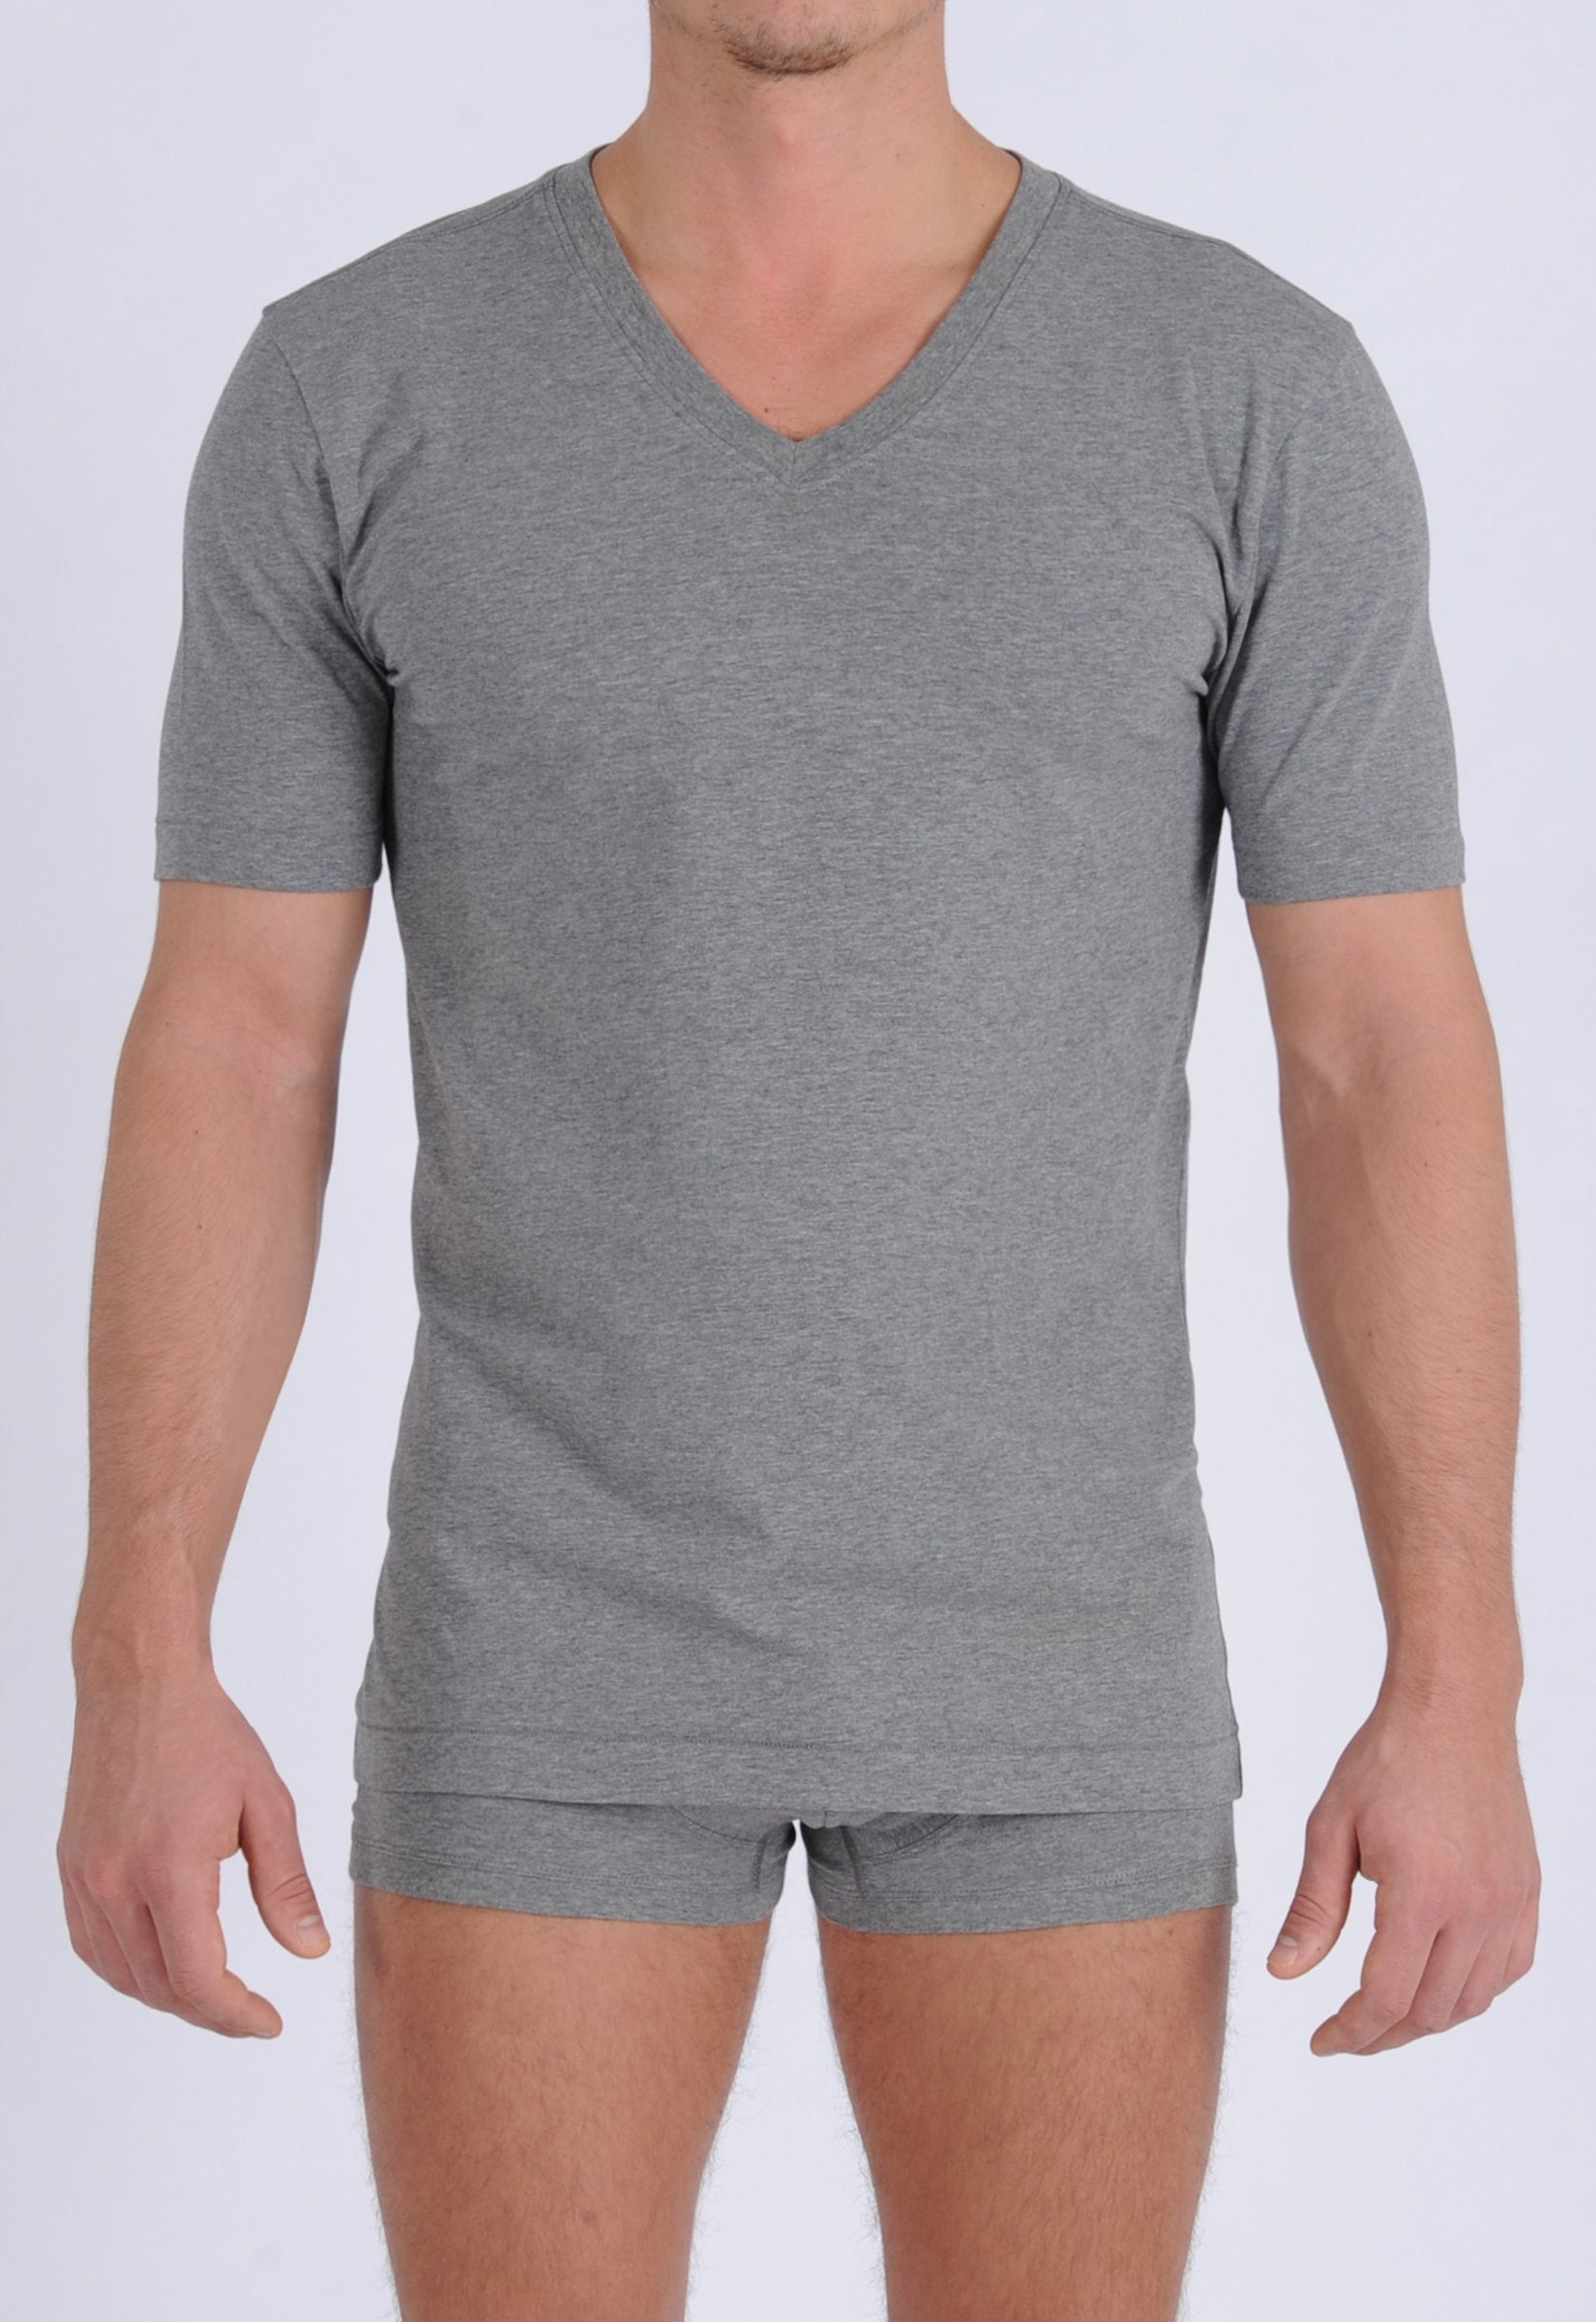 Men's Signature Series - V-Neck T-Shirt Grey